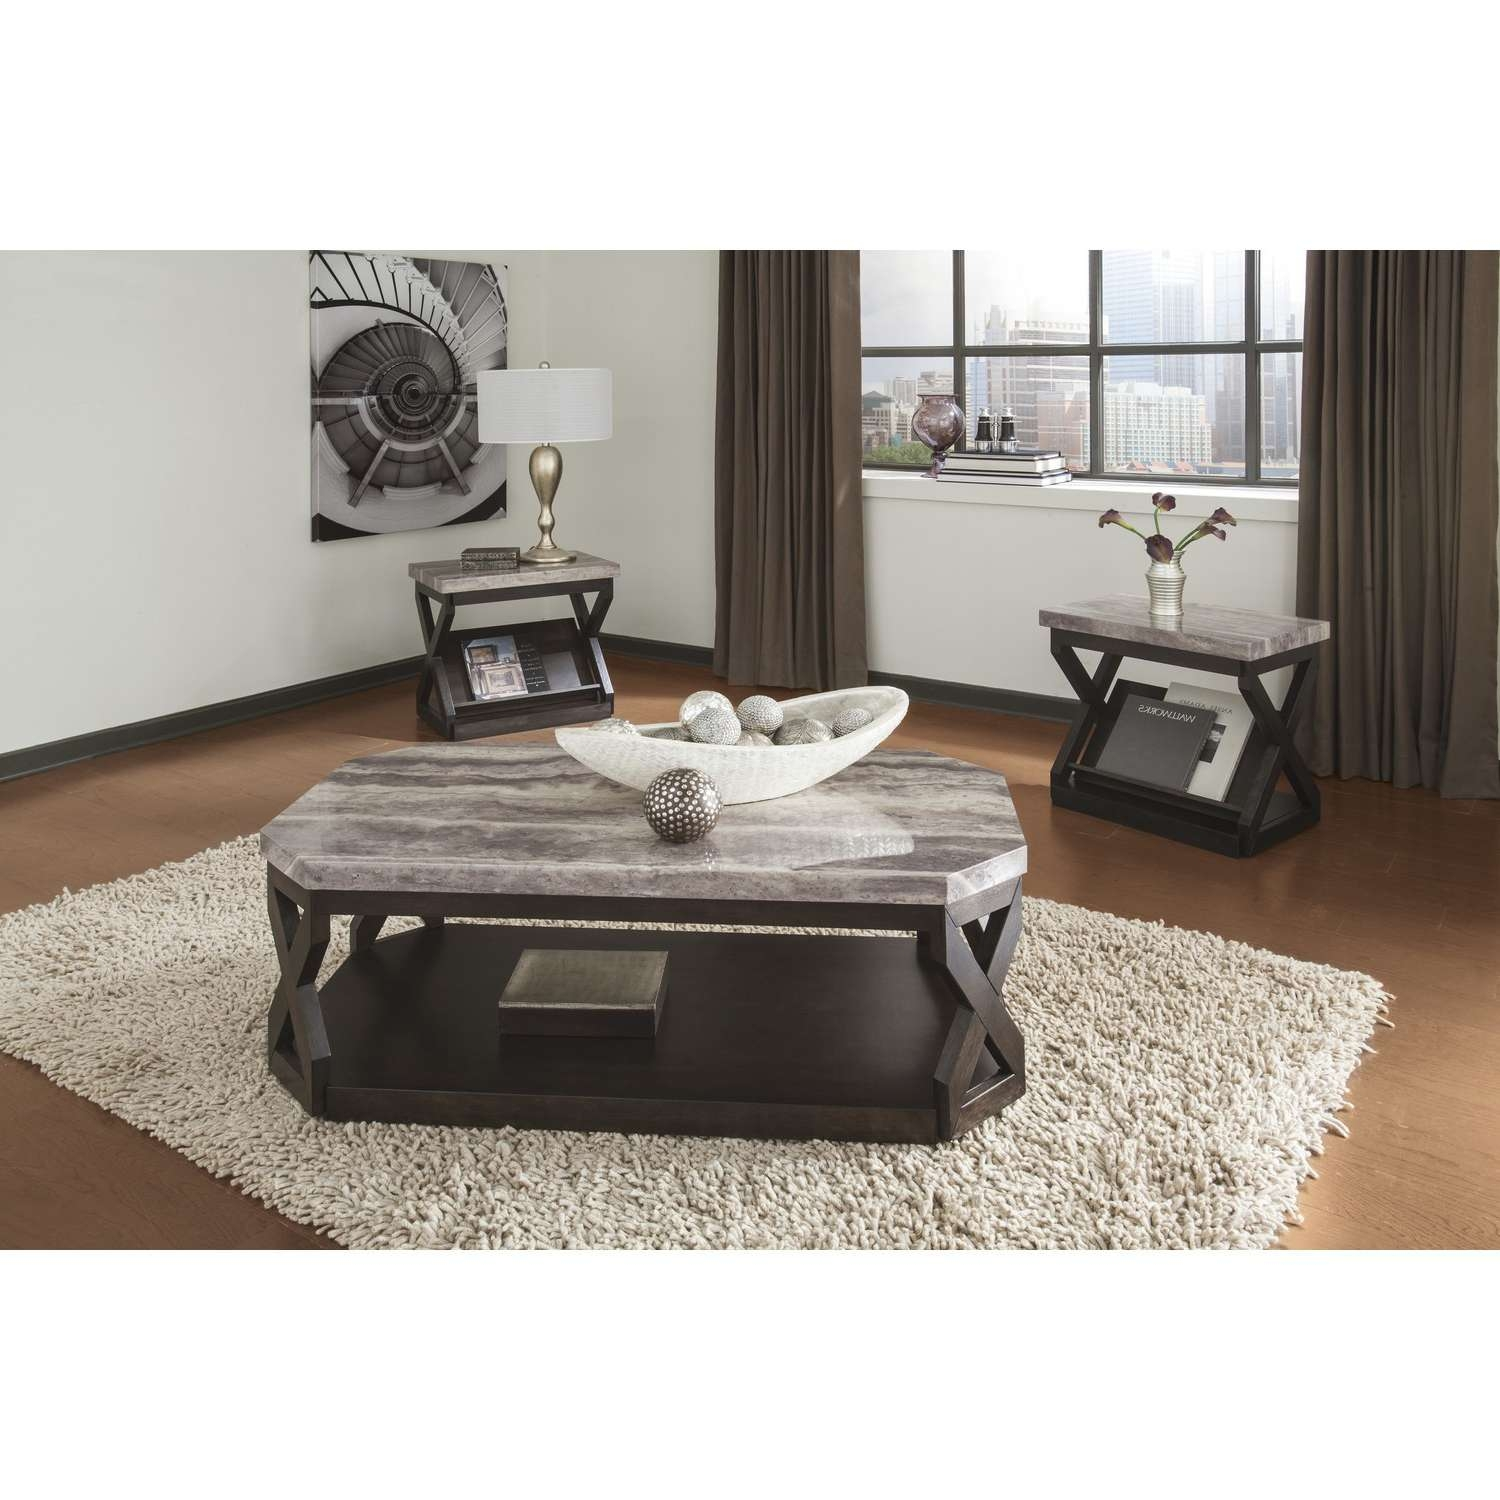 Popular Grey Coffee Table Sets For Furniture Elegant Granite Top Coffee Table Sets For Living Room (View 16 of 20)